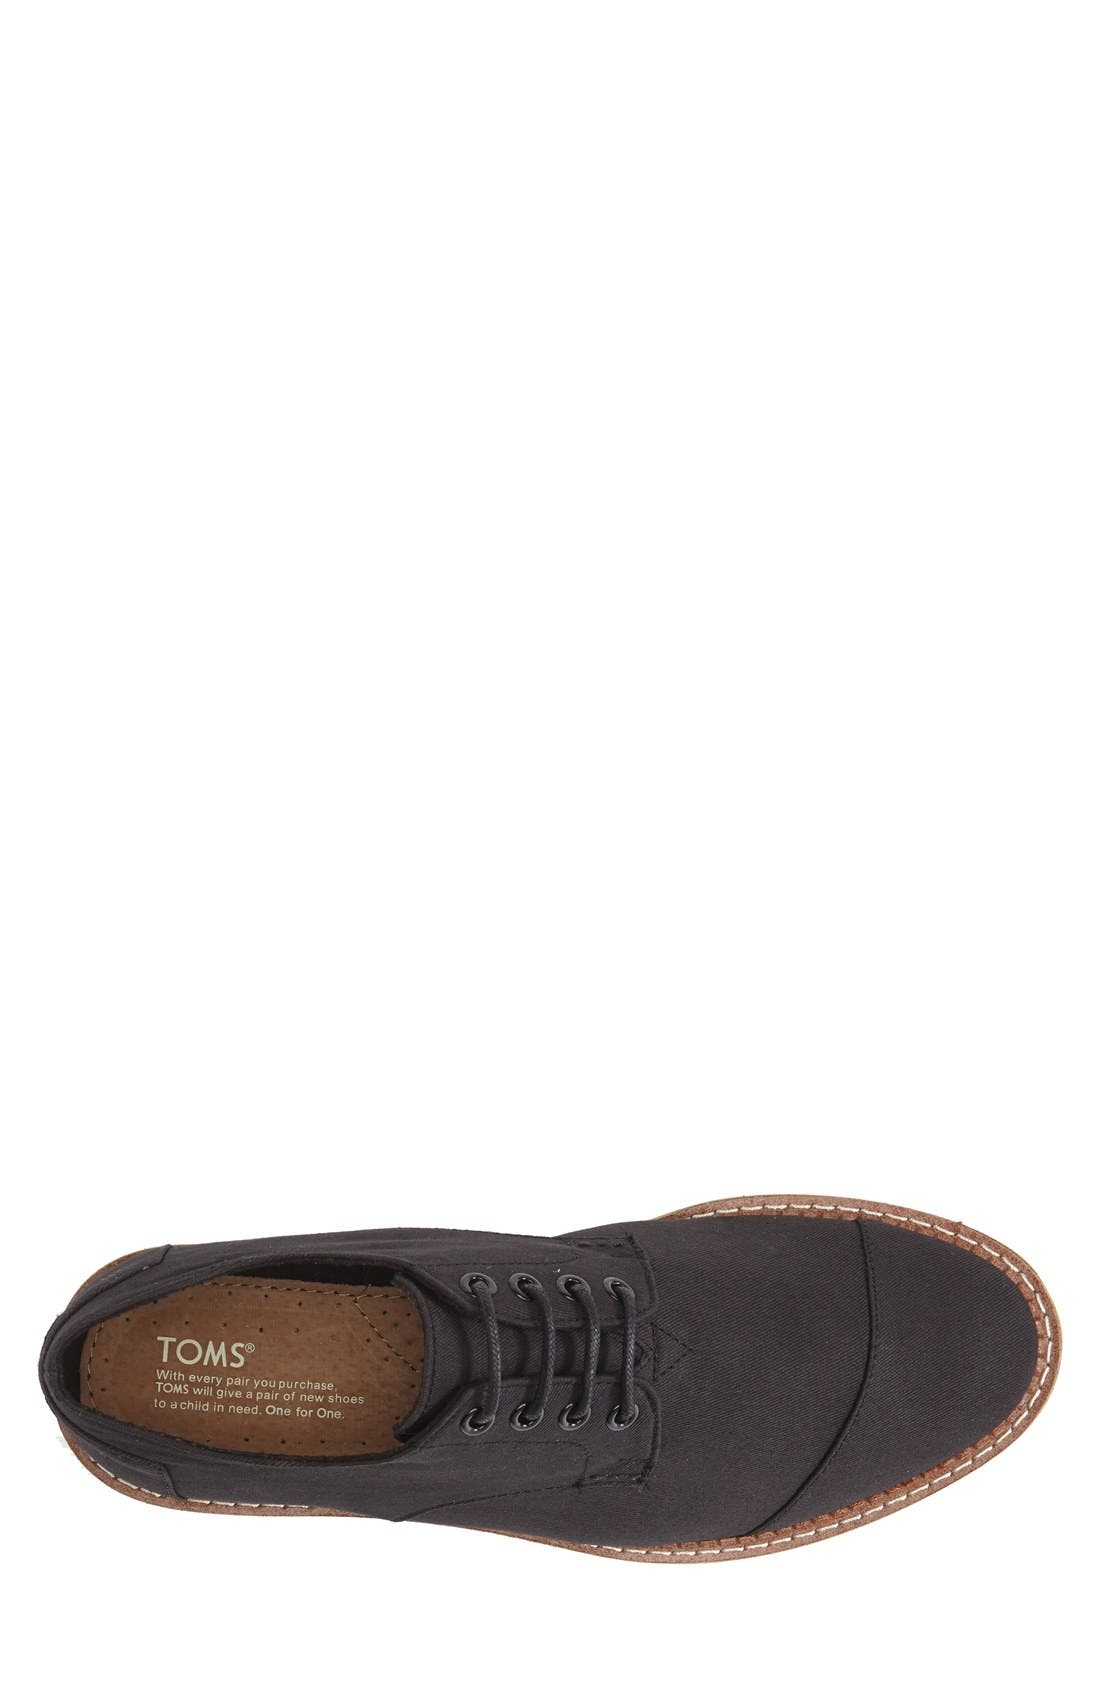 'Classic Brogue' Cotton Twill Derby,                             Alternate thumbnail 3, color,                             001